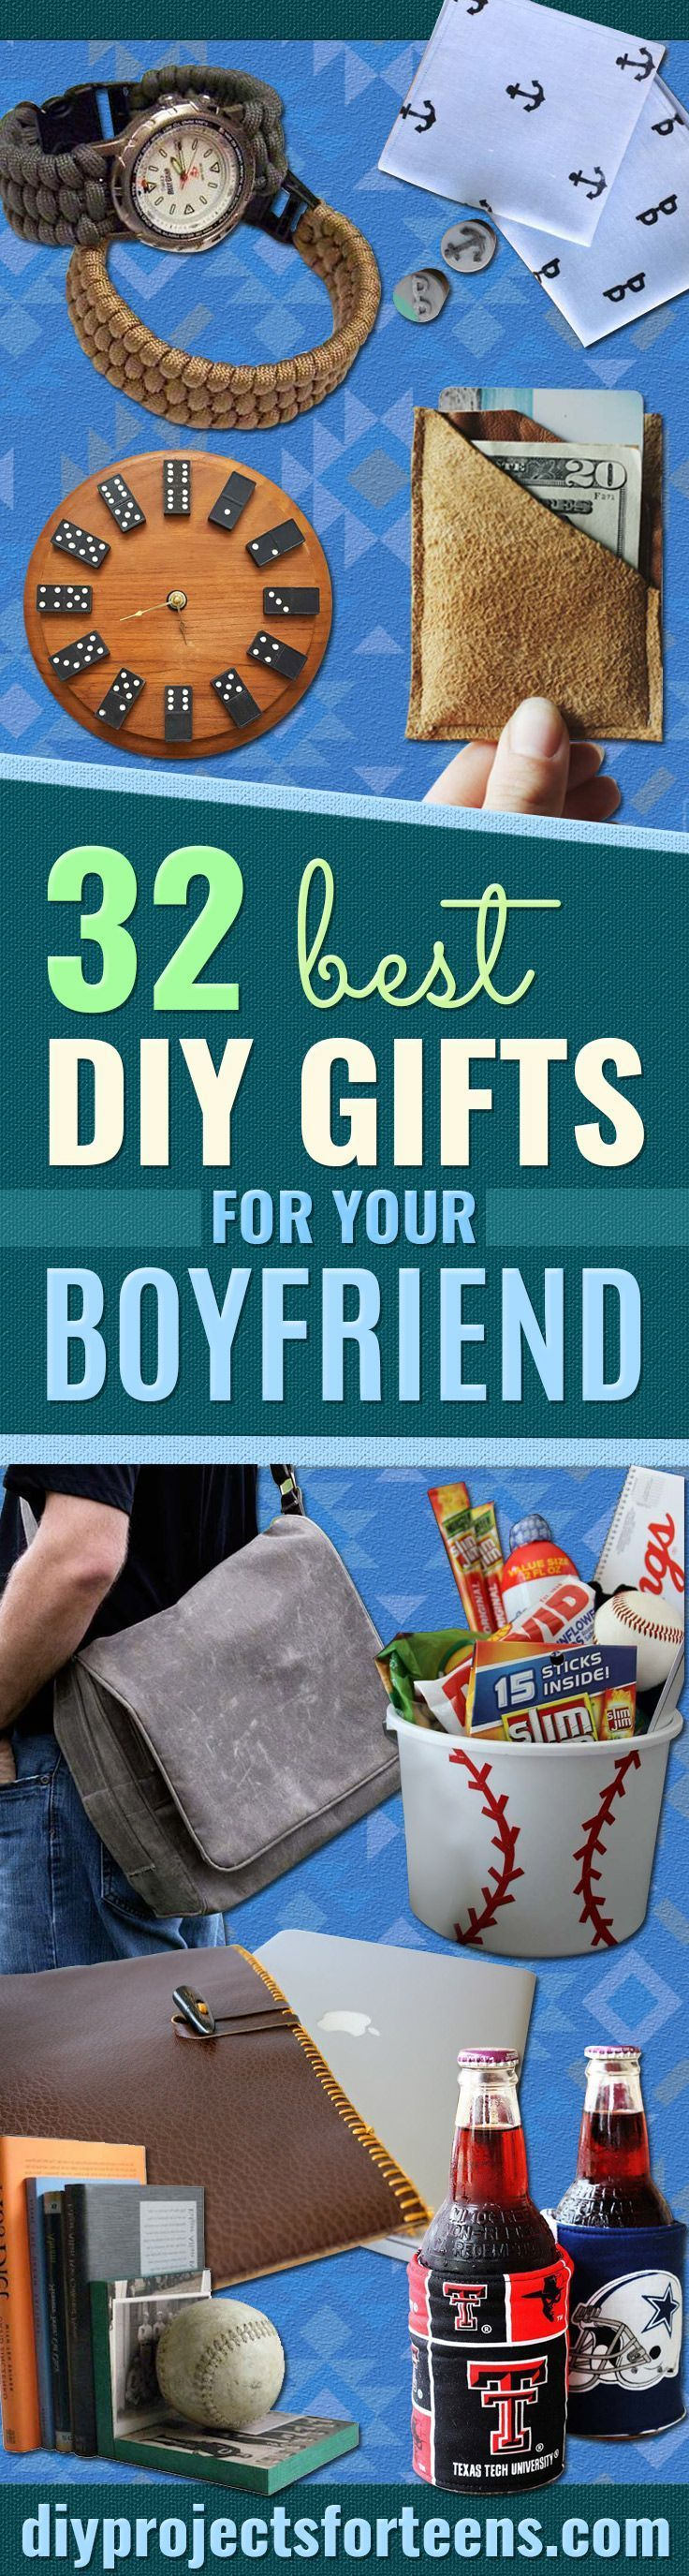 Pin by Show BoxKings on Gifts for guys | Pinterest | DIY Gifts ...